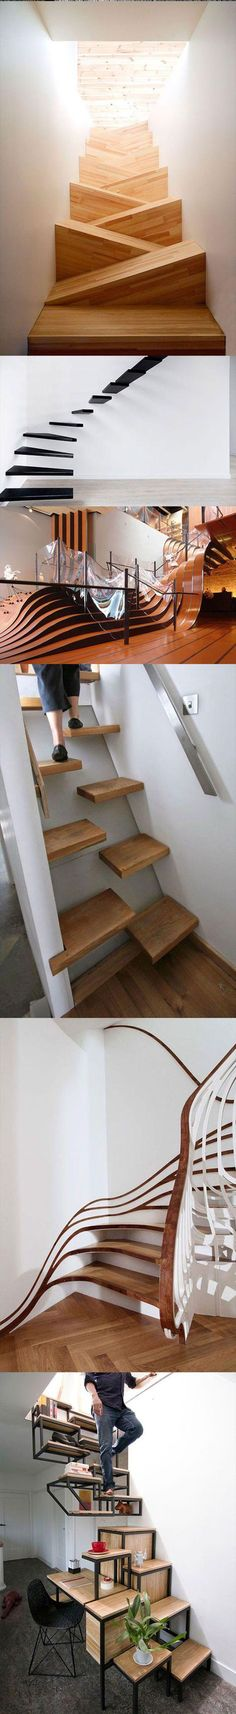 Amazing Stairs Designs